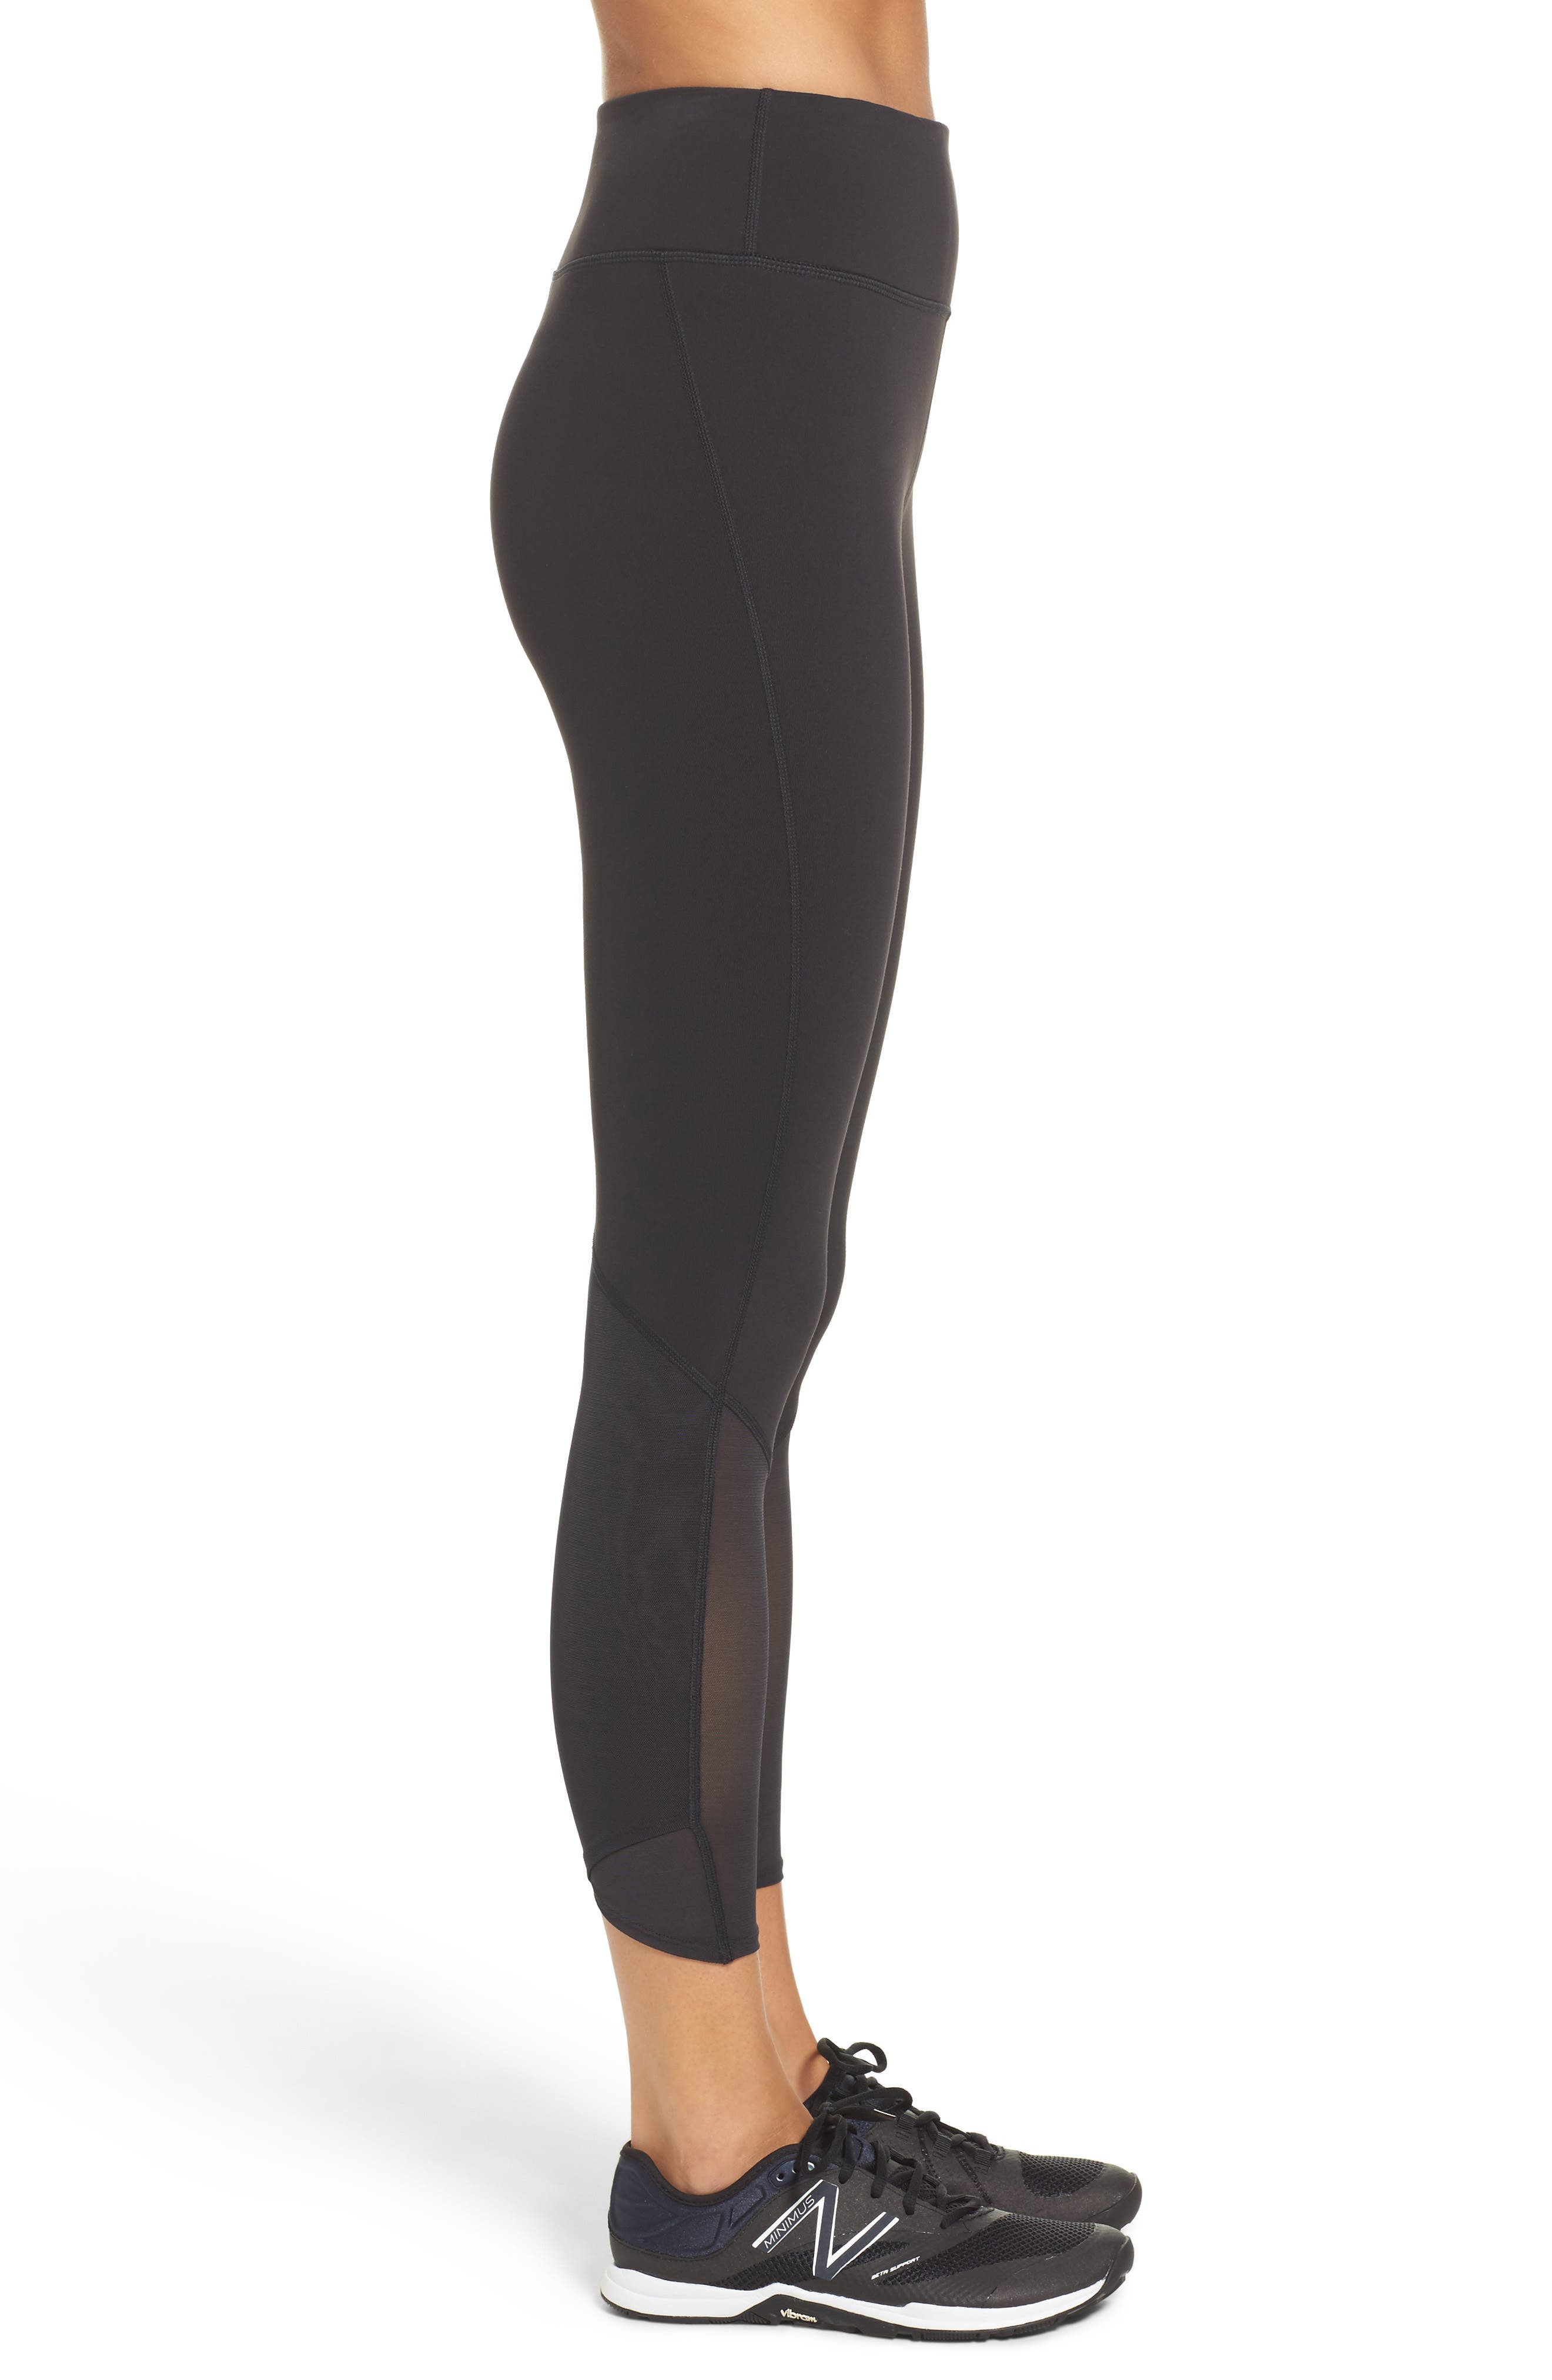 Elixir High Waist Ankle Leggings,                             Alternate thumbnail 3, color,